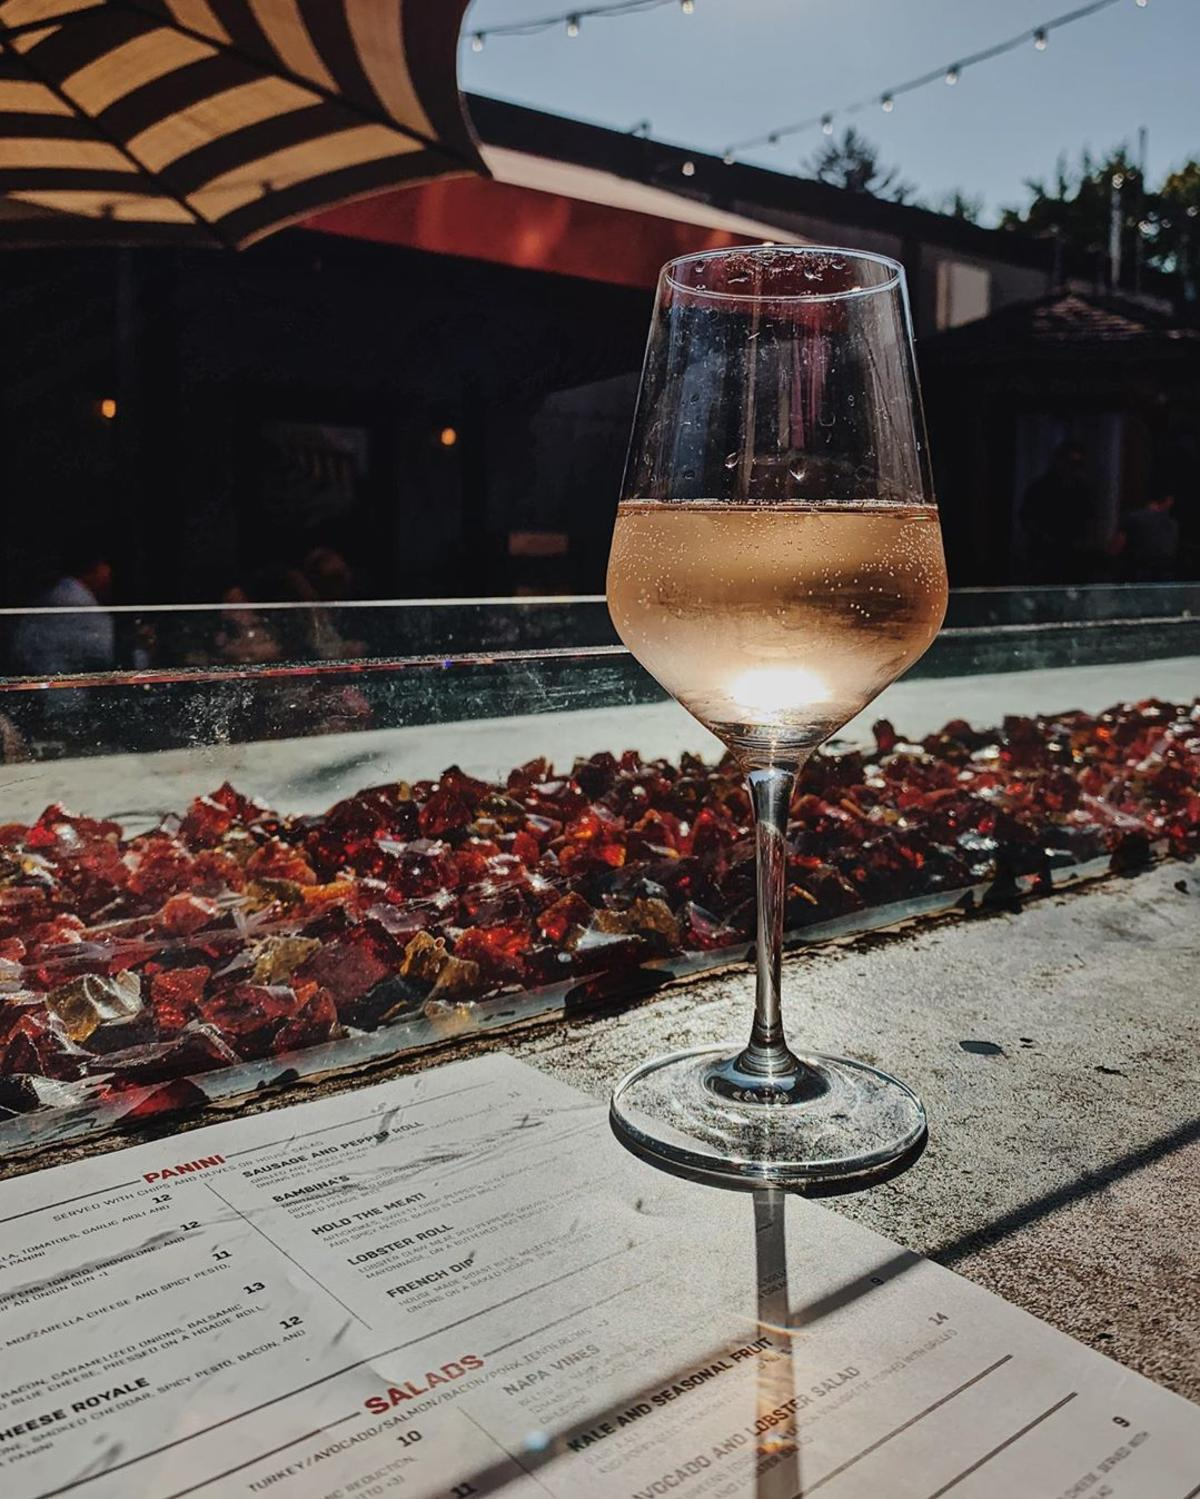 A glass of wine by the outdoor firebar on the patio of Prost! Wine Bar & Charcuterie in Frankenmuth